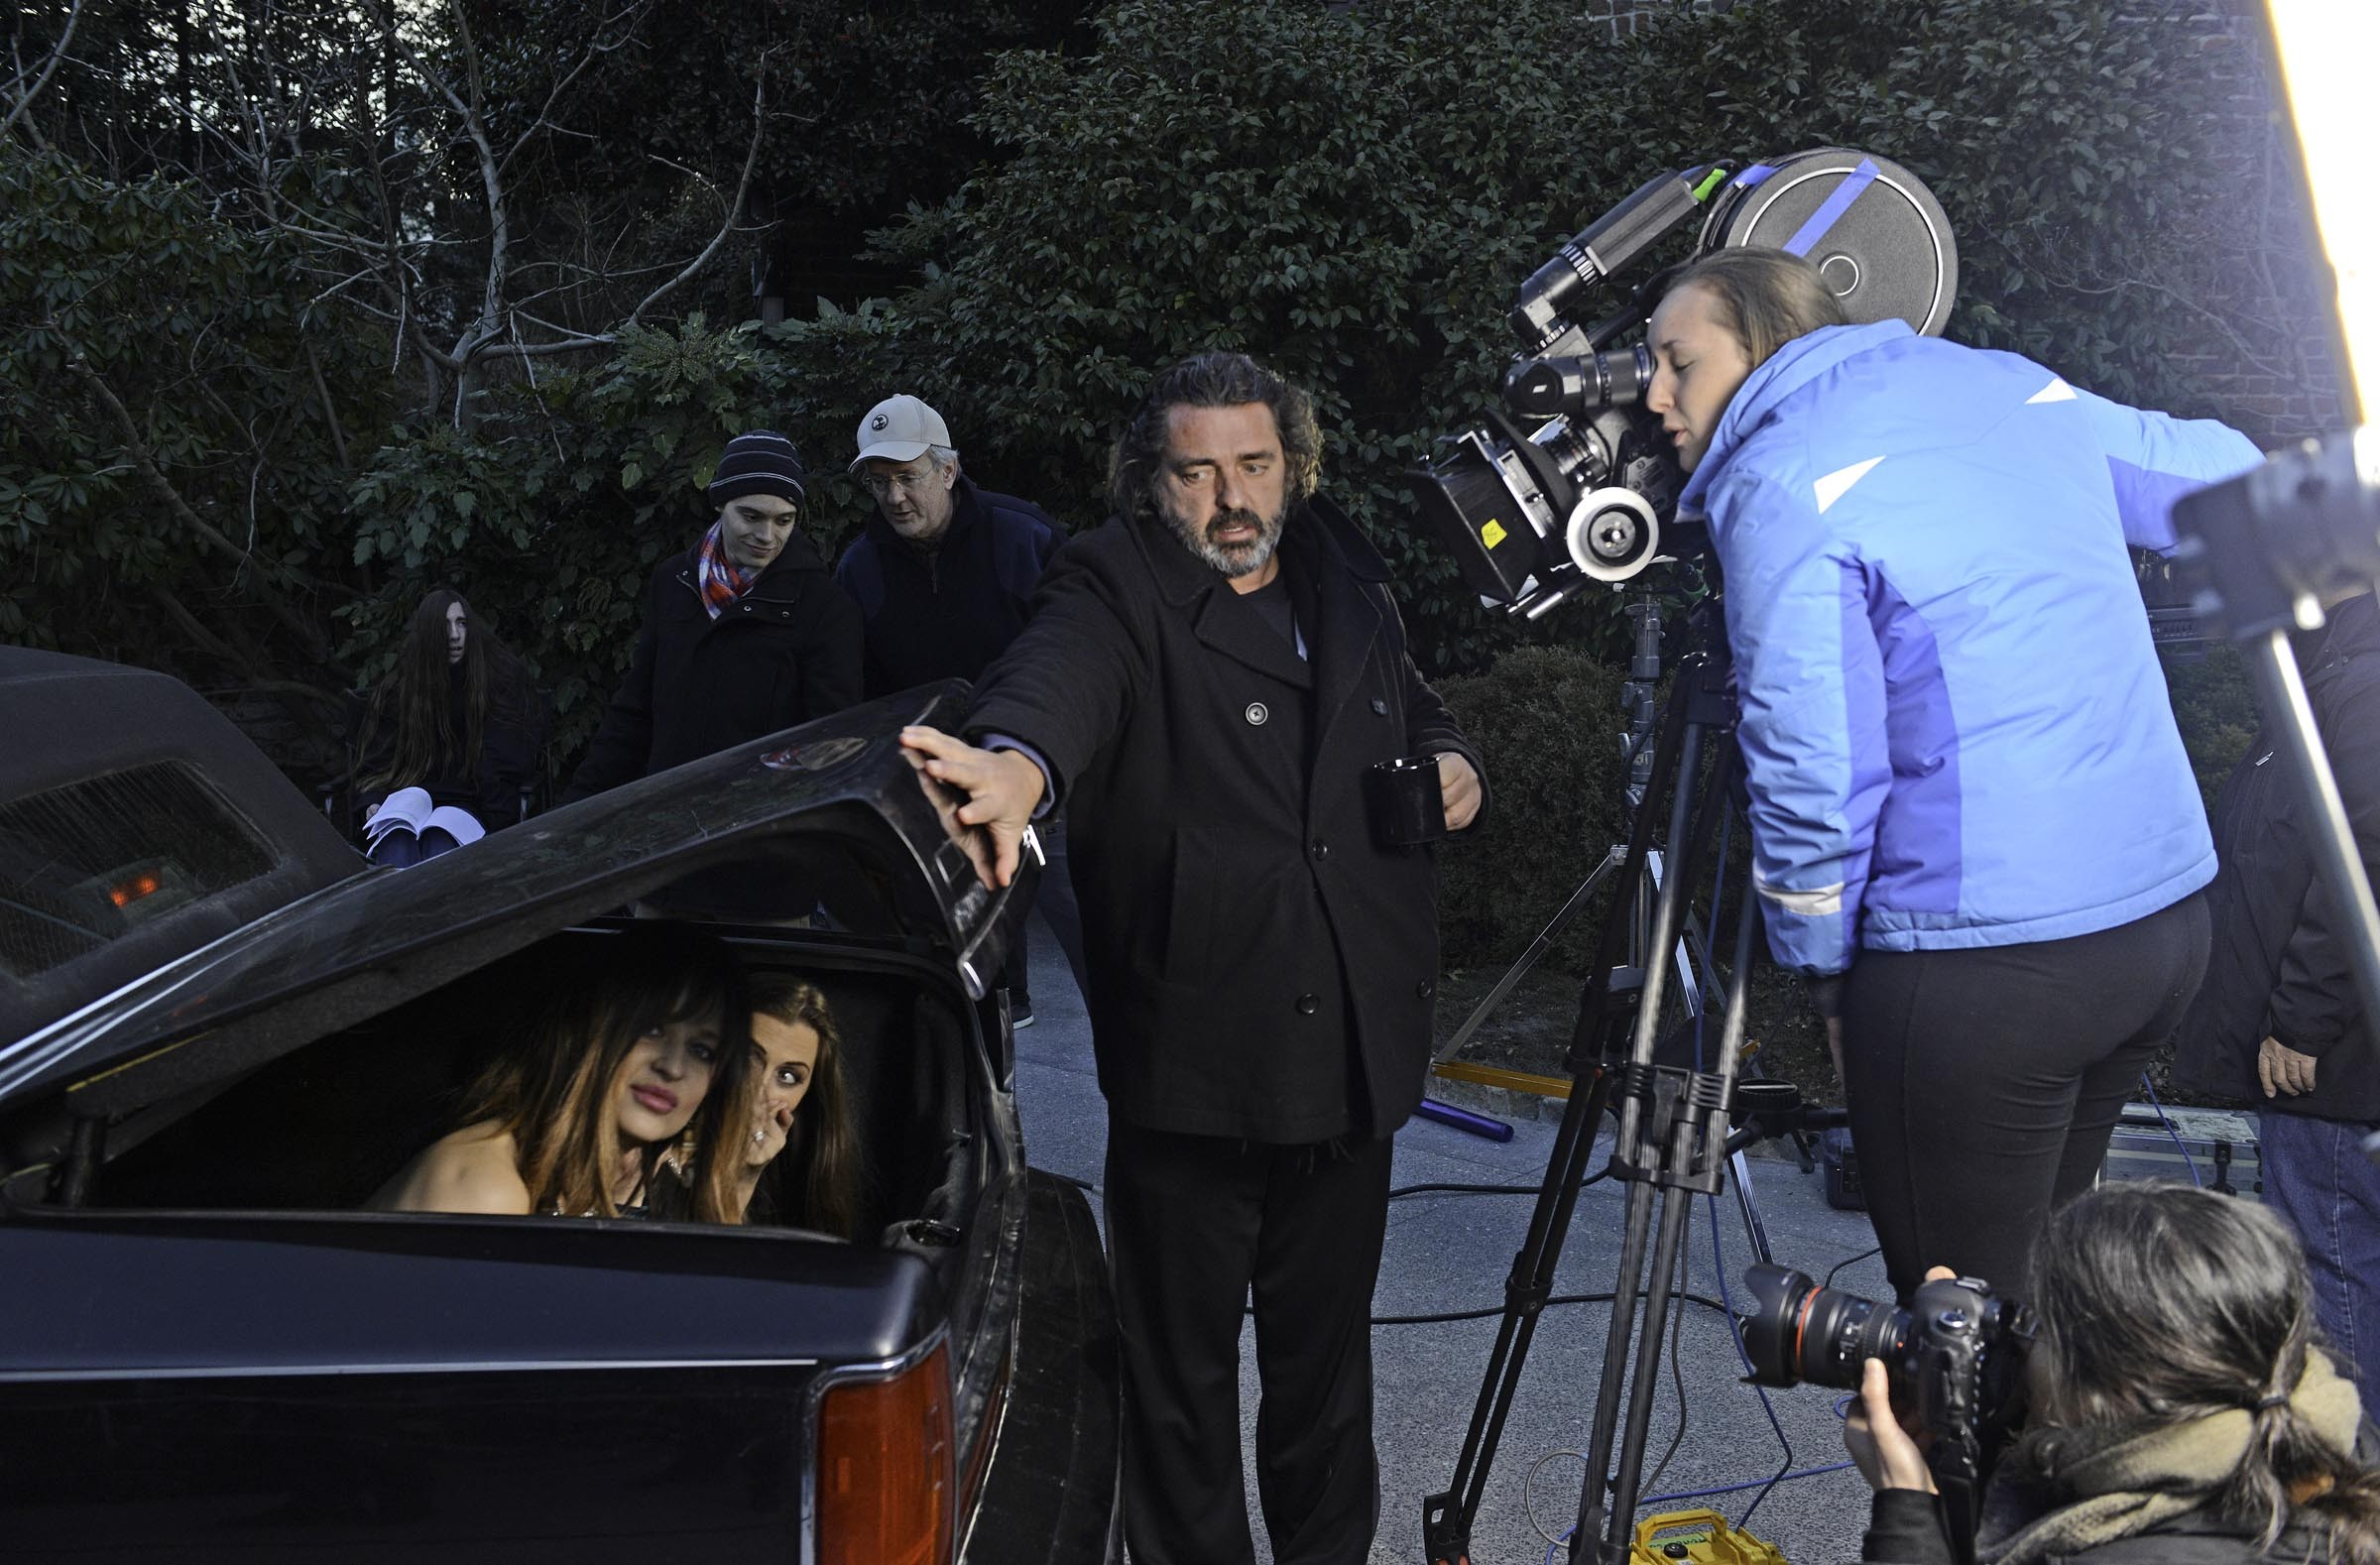 """Shooting near Windsor Farms, actor and first-time director Angus Macfadyen (""""Braveheart""""), directs a scene of his """"Macbeth"""" adaptation, featuring a trio of wealthy socialites instead of the three witches or """"weyward Sisters"""" from the first folio edition. VCU student Laura Zoellner operates the camera. - SCOTT ELMQUIST"""